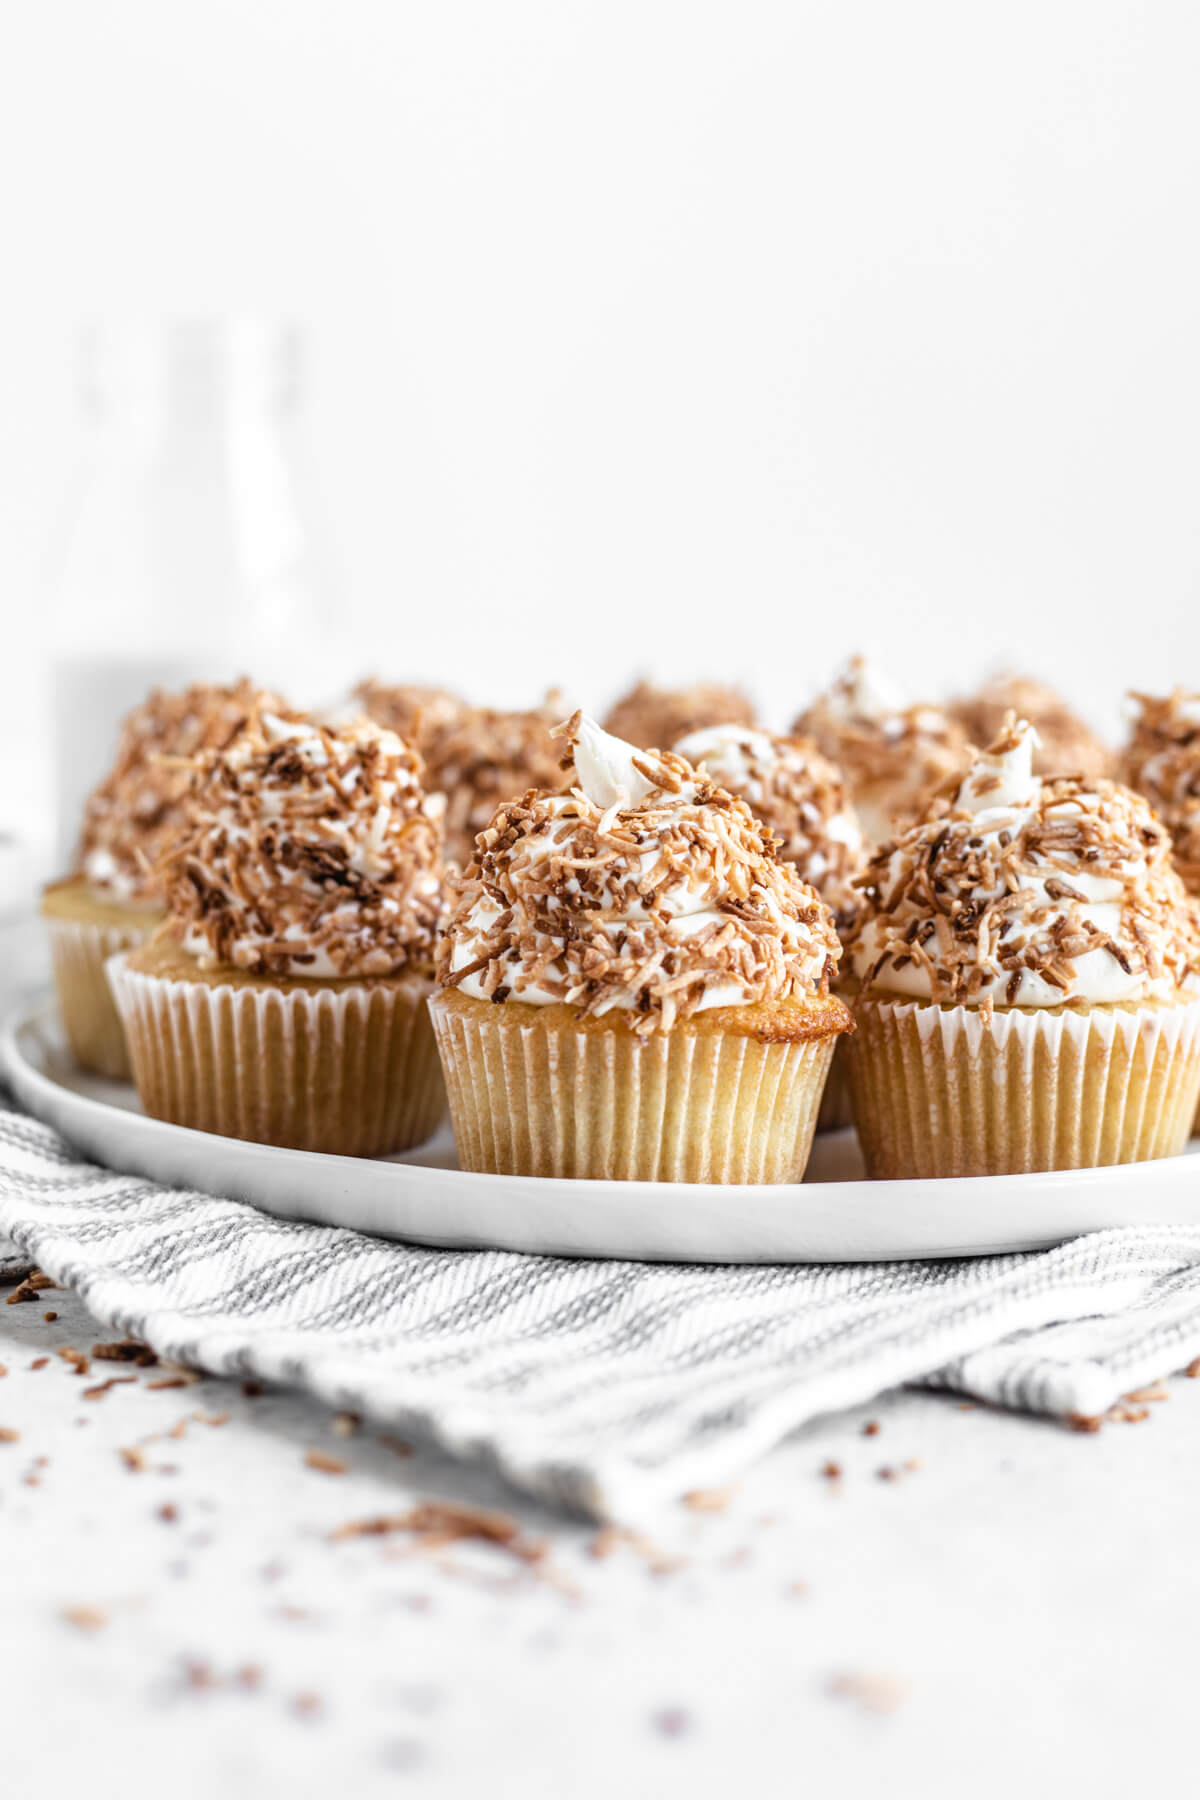 coconut flavoured cupcakes on a white plate